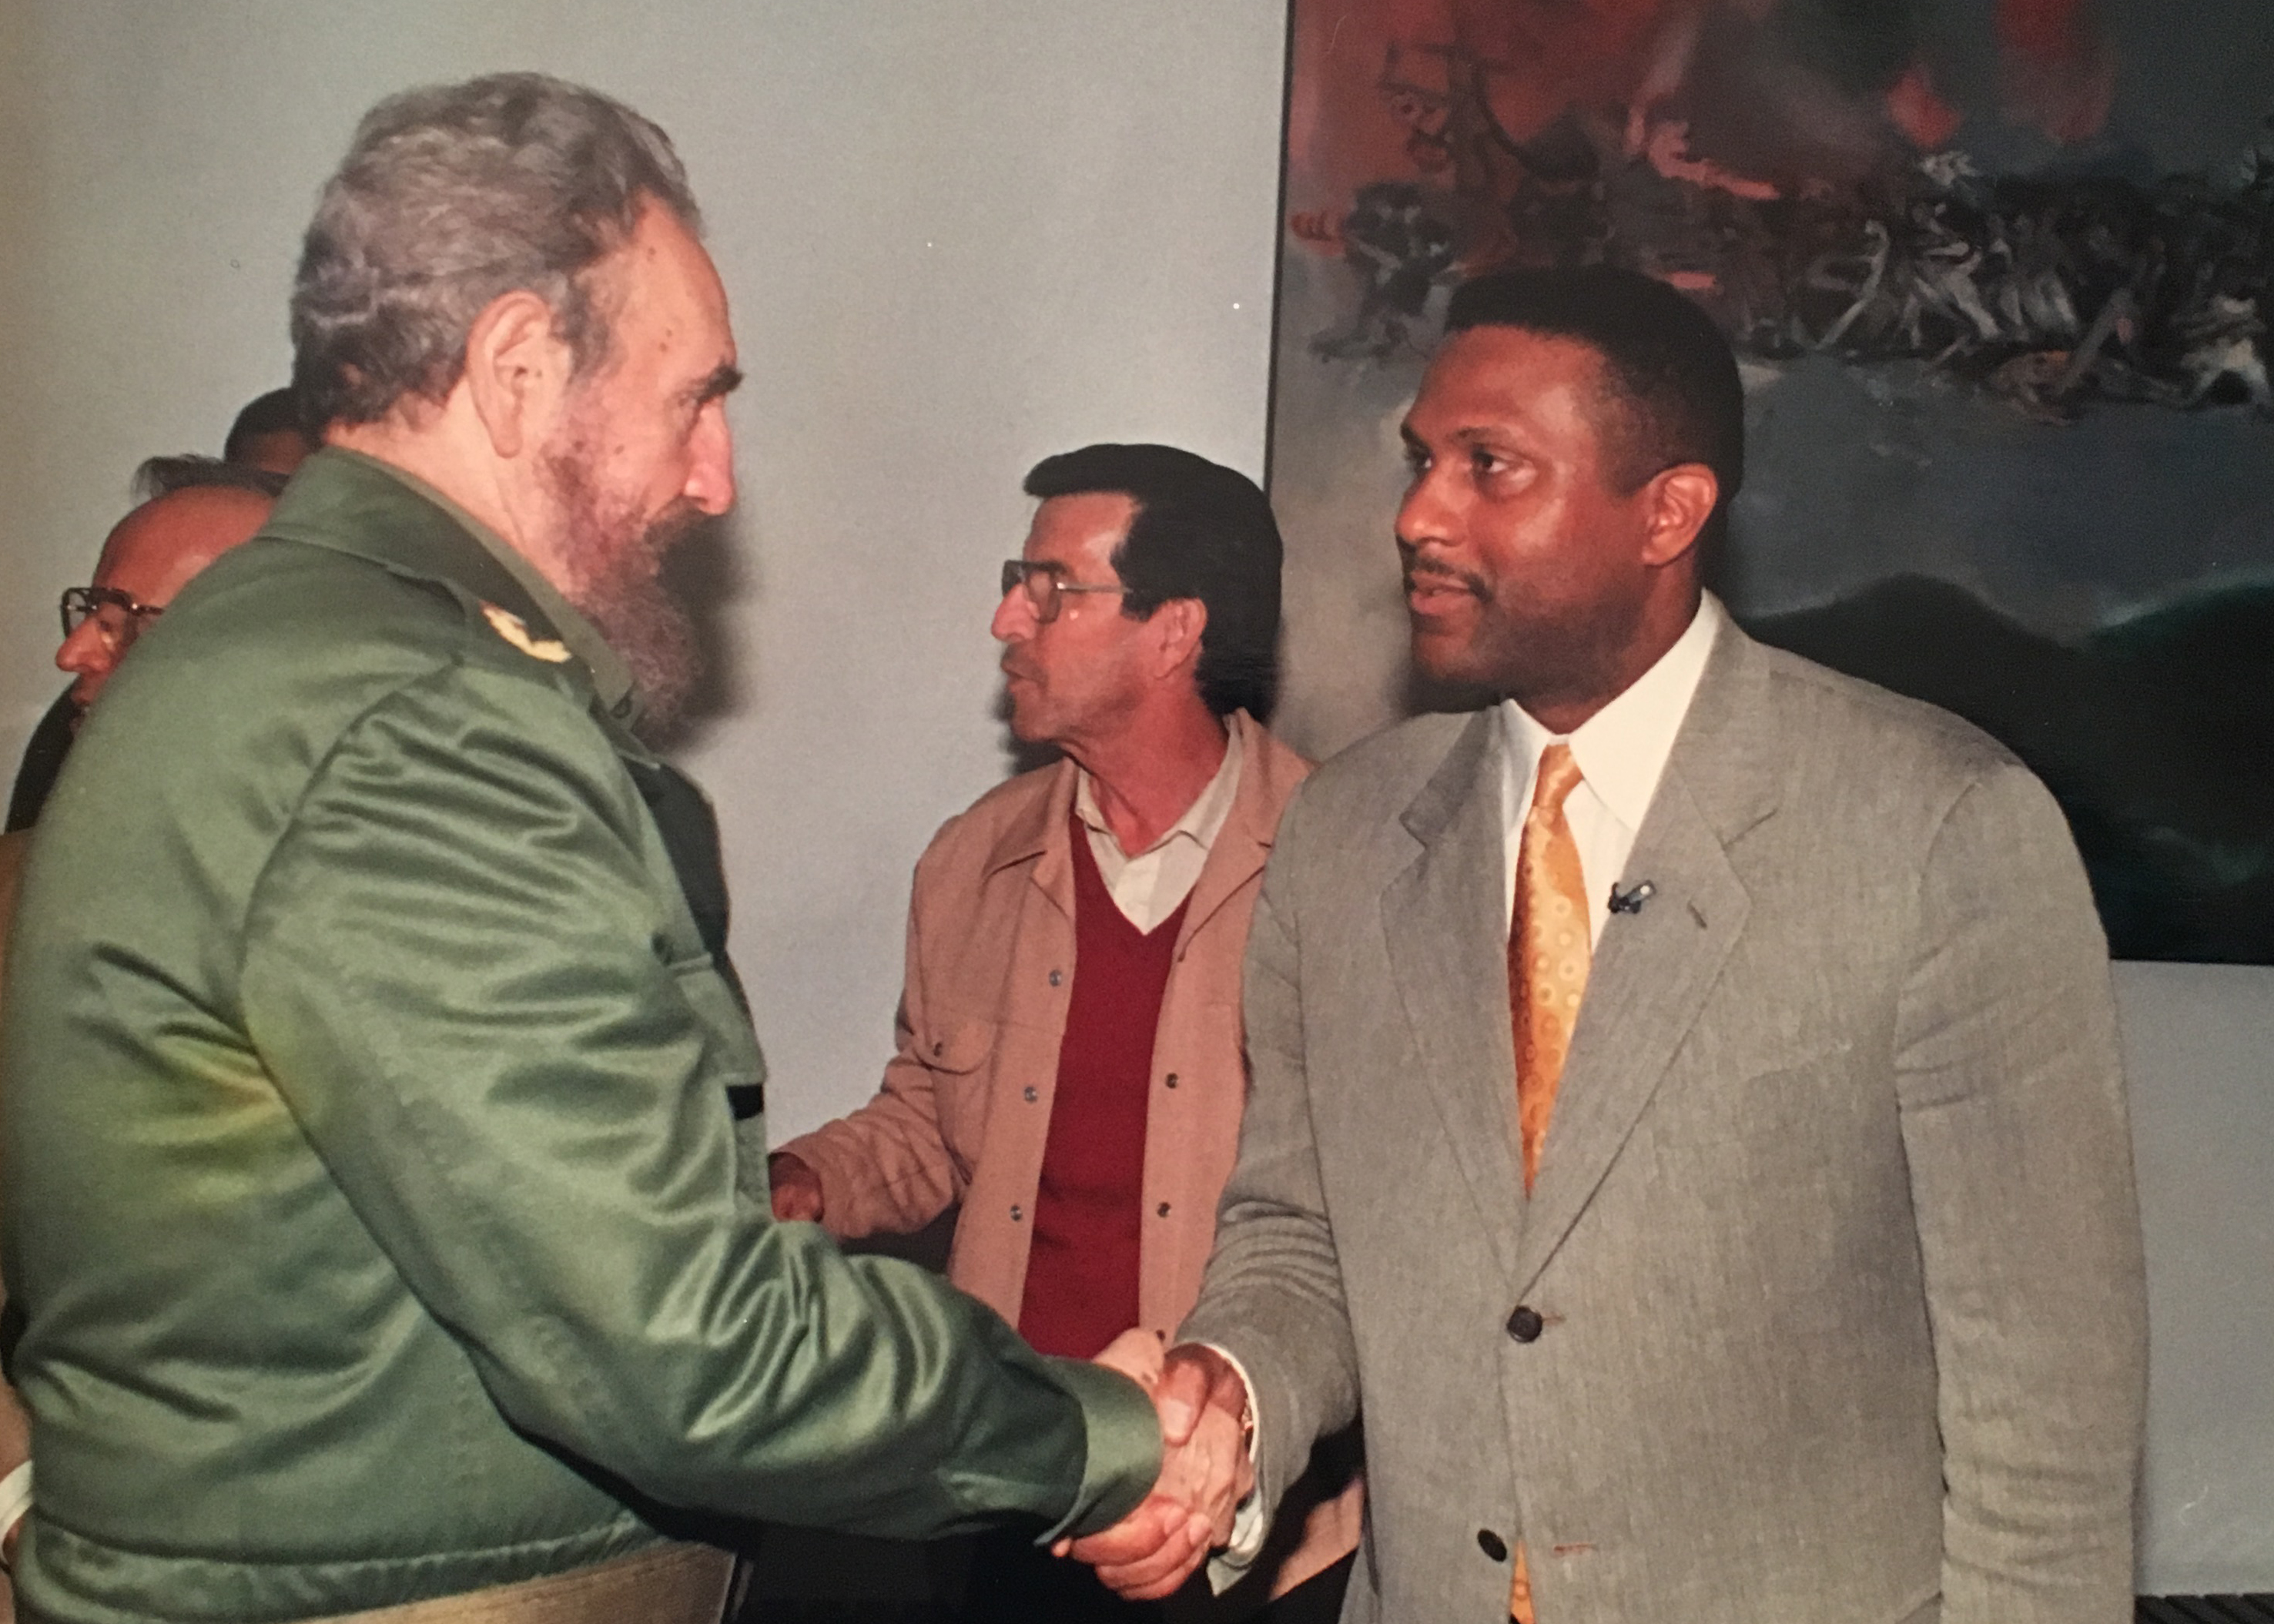 Fidel Castro and Tavis Smiley in Castro's office in Havana on Jan. 7, 1998.